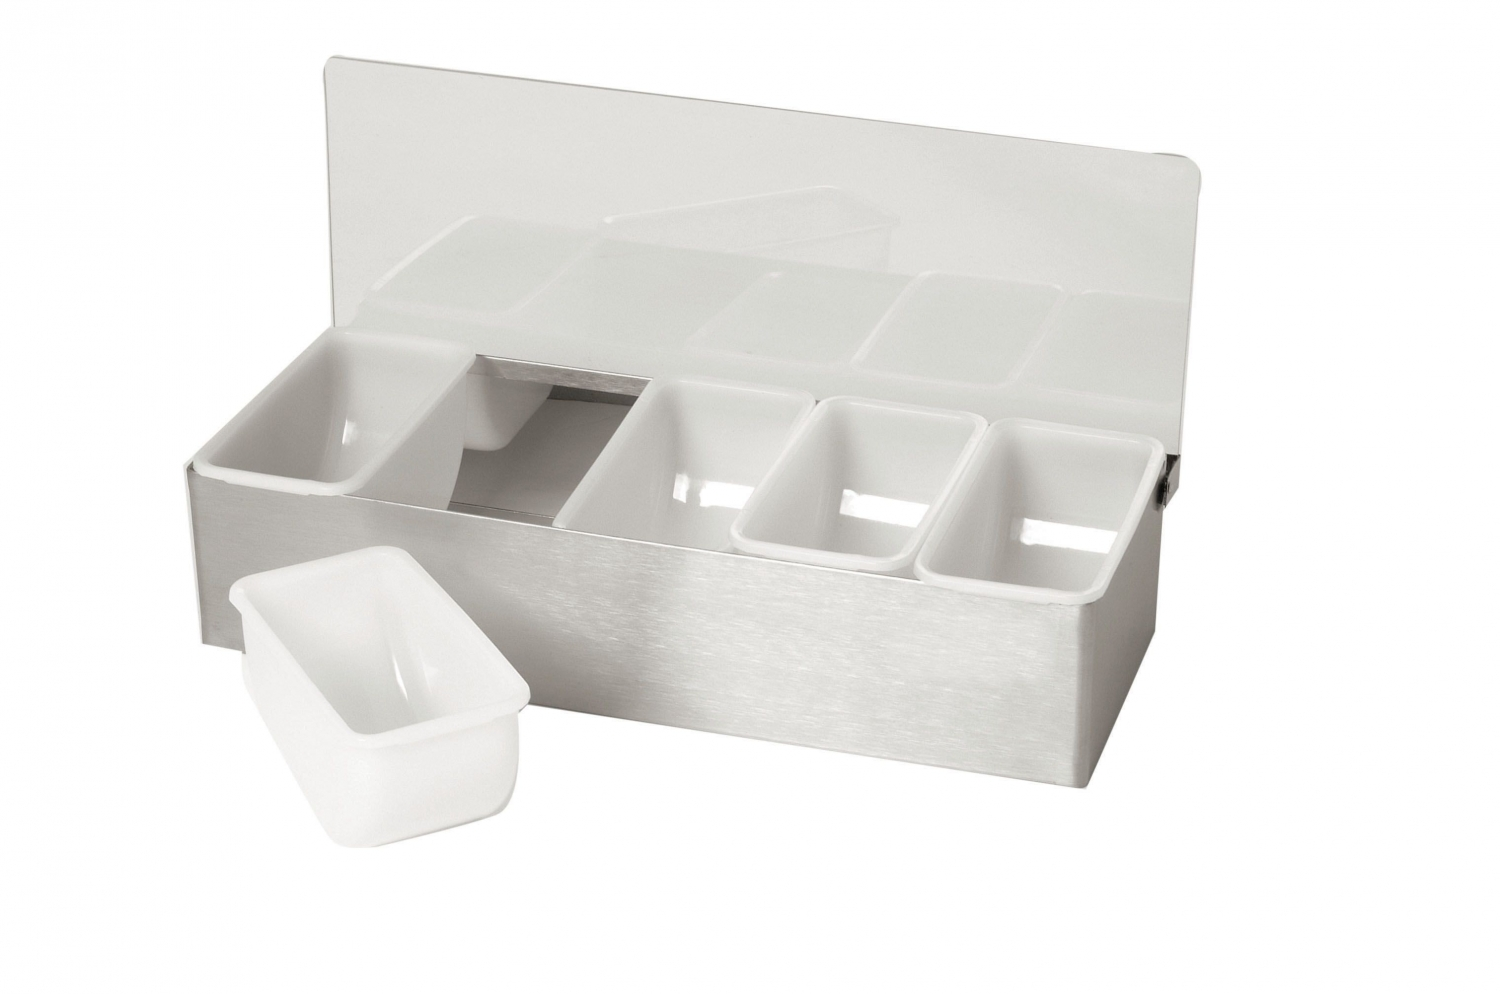 Johnson Rose 7944  Condiment Server - Bar Caddy With 4 Inserts